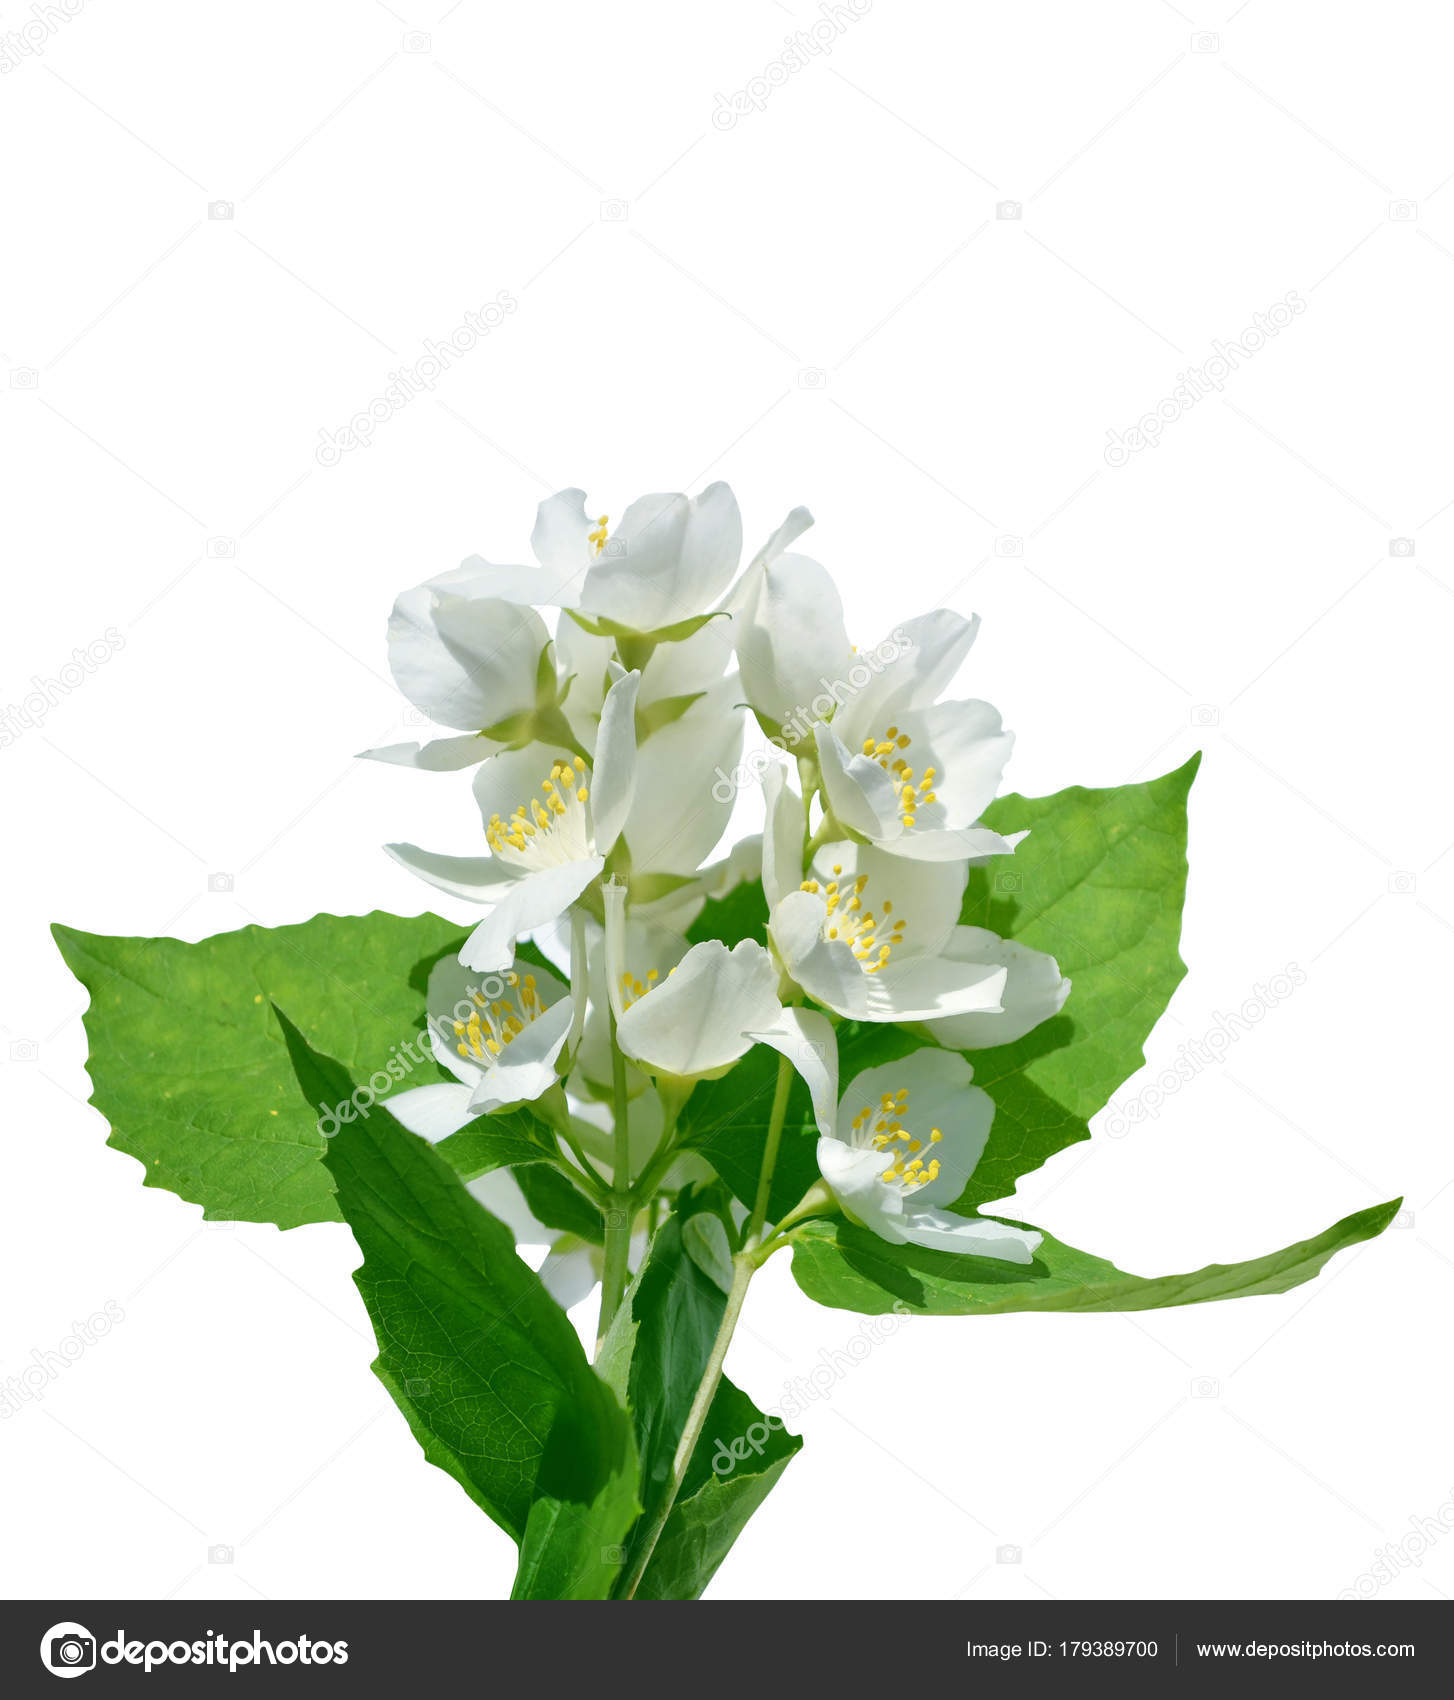 Branch Of Jasmine Flowers Stock Photo Alenalihacheva 179389700